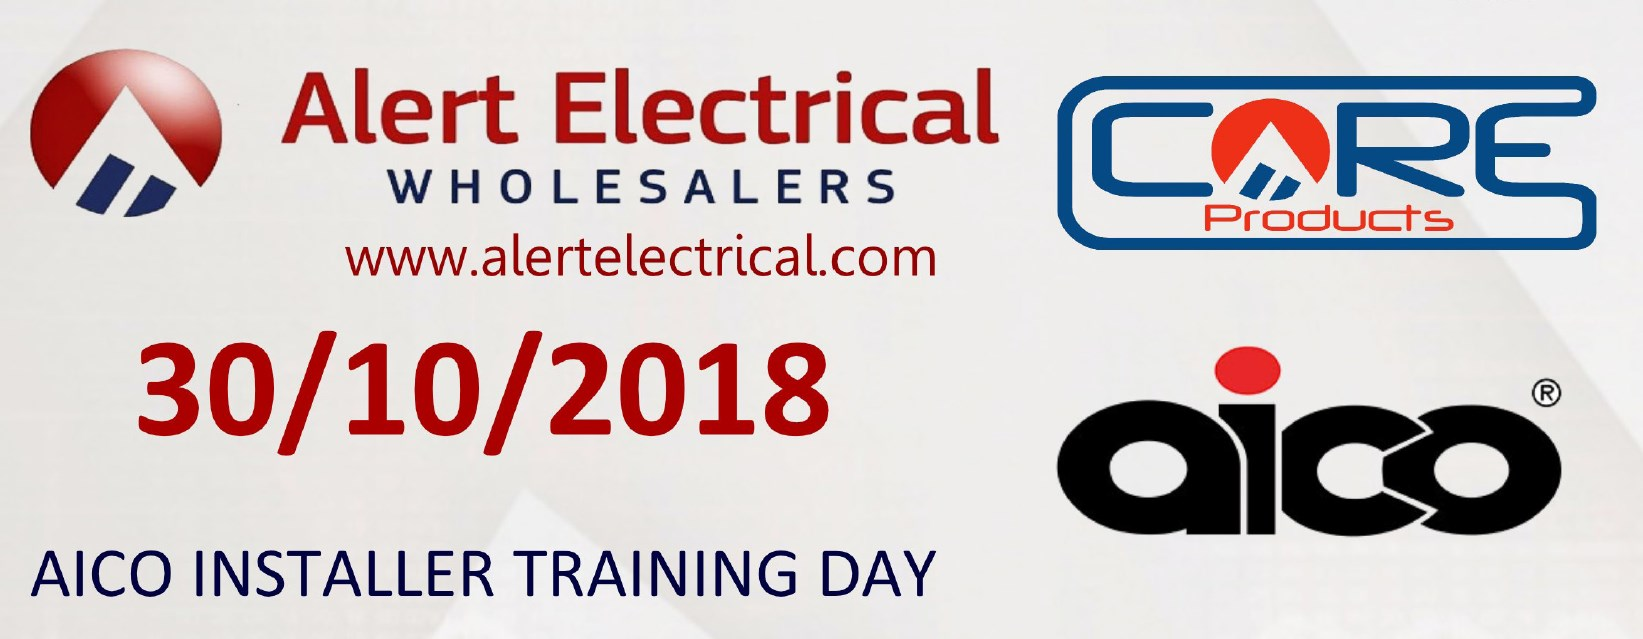 Aico Installer Training Day